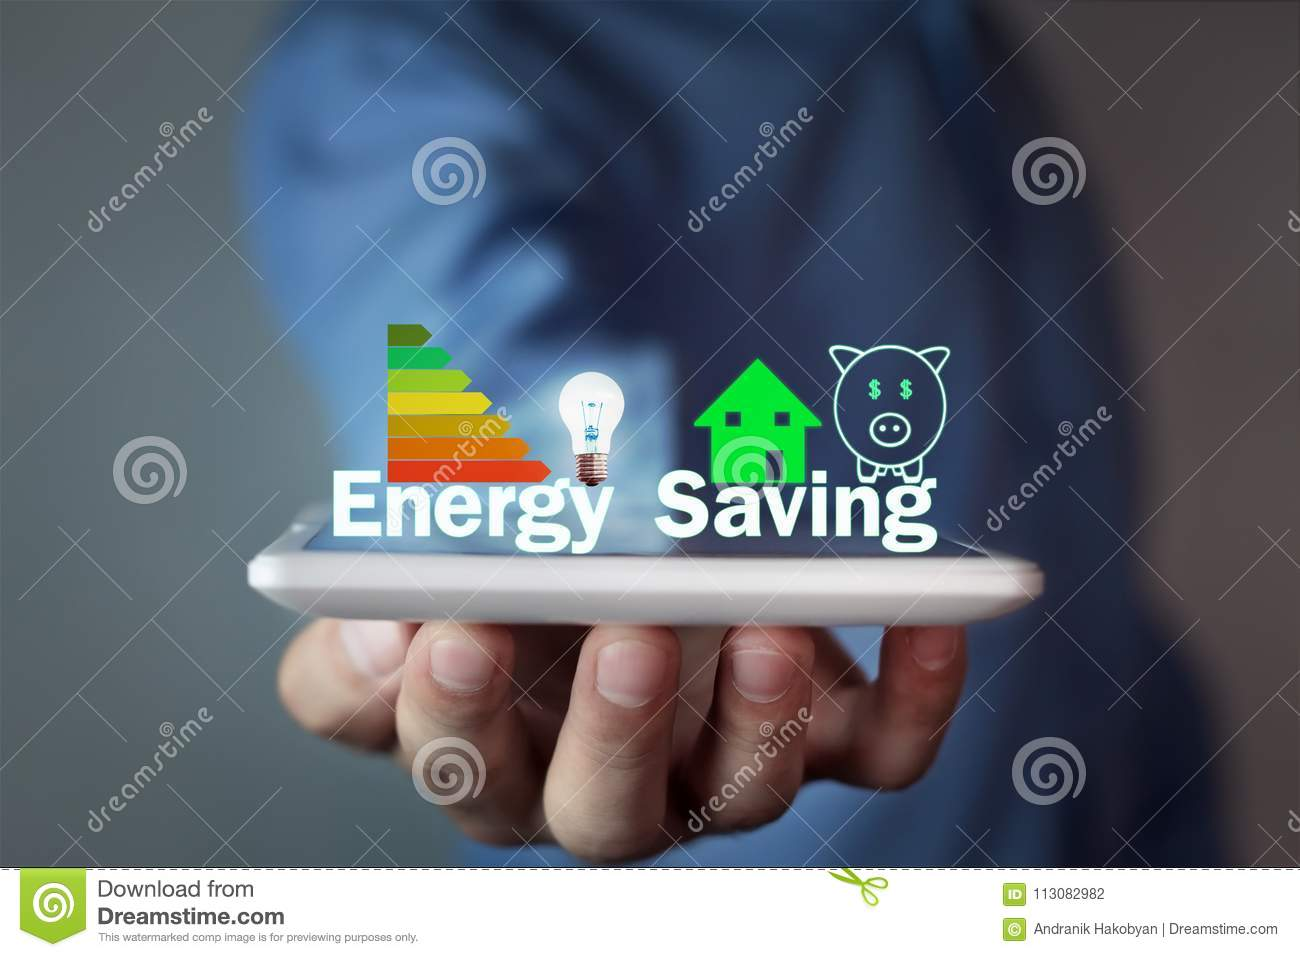 Man holding Energy Saving concept.